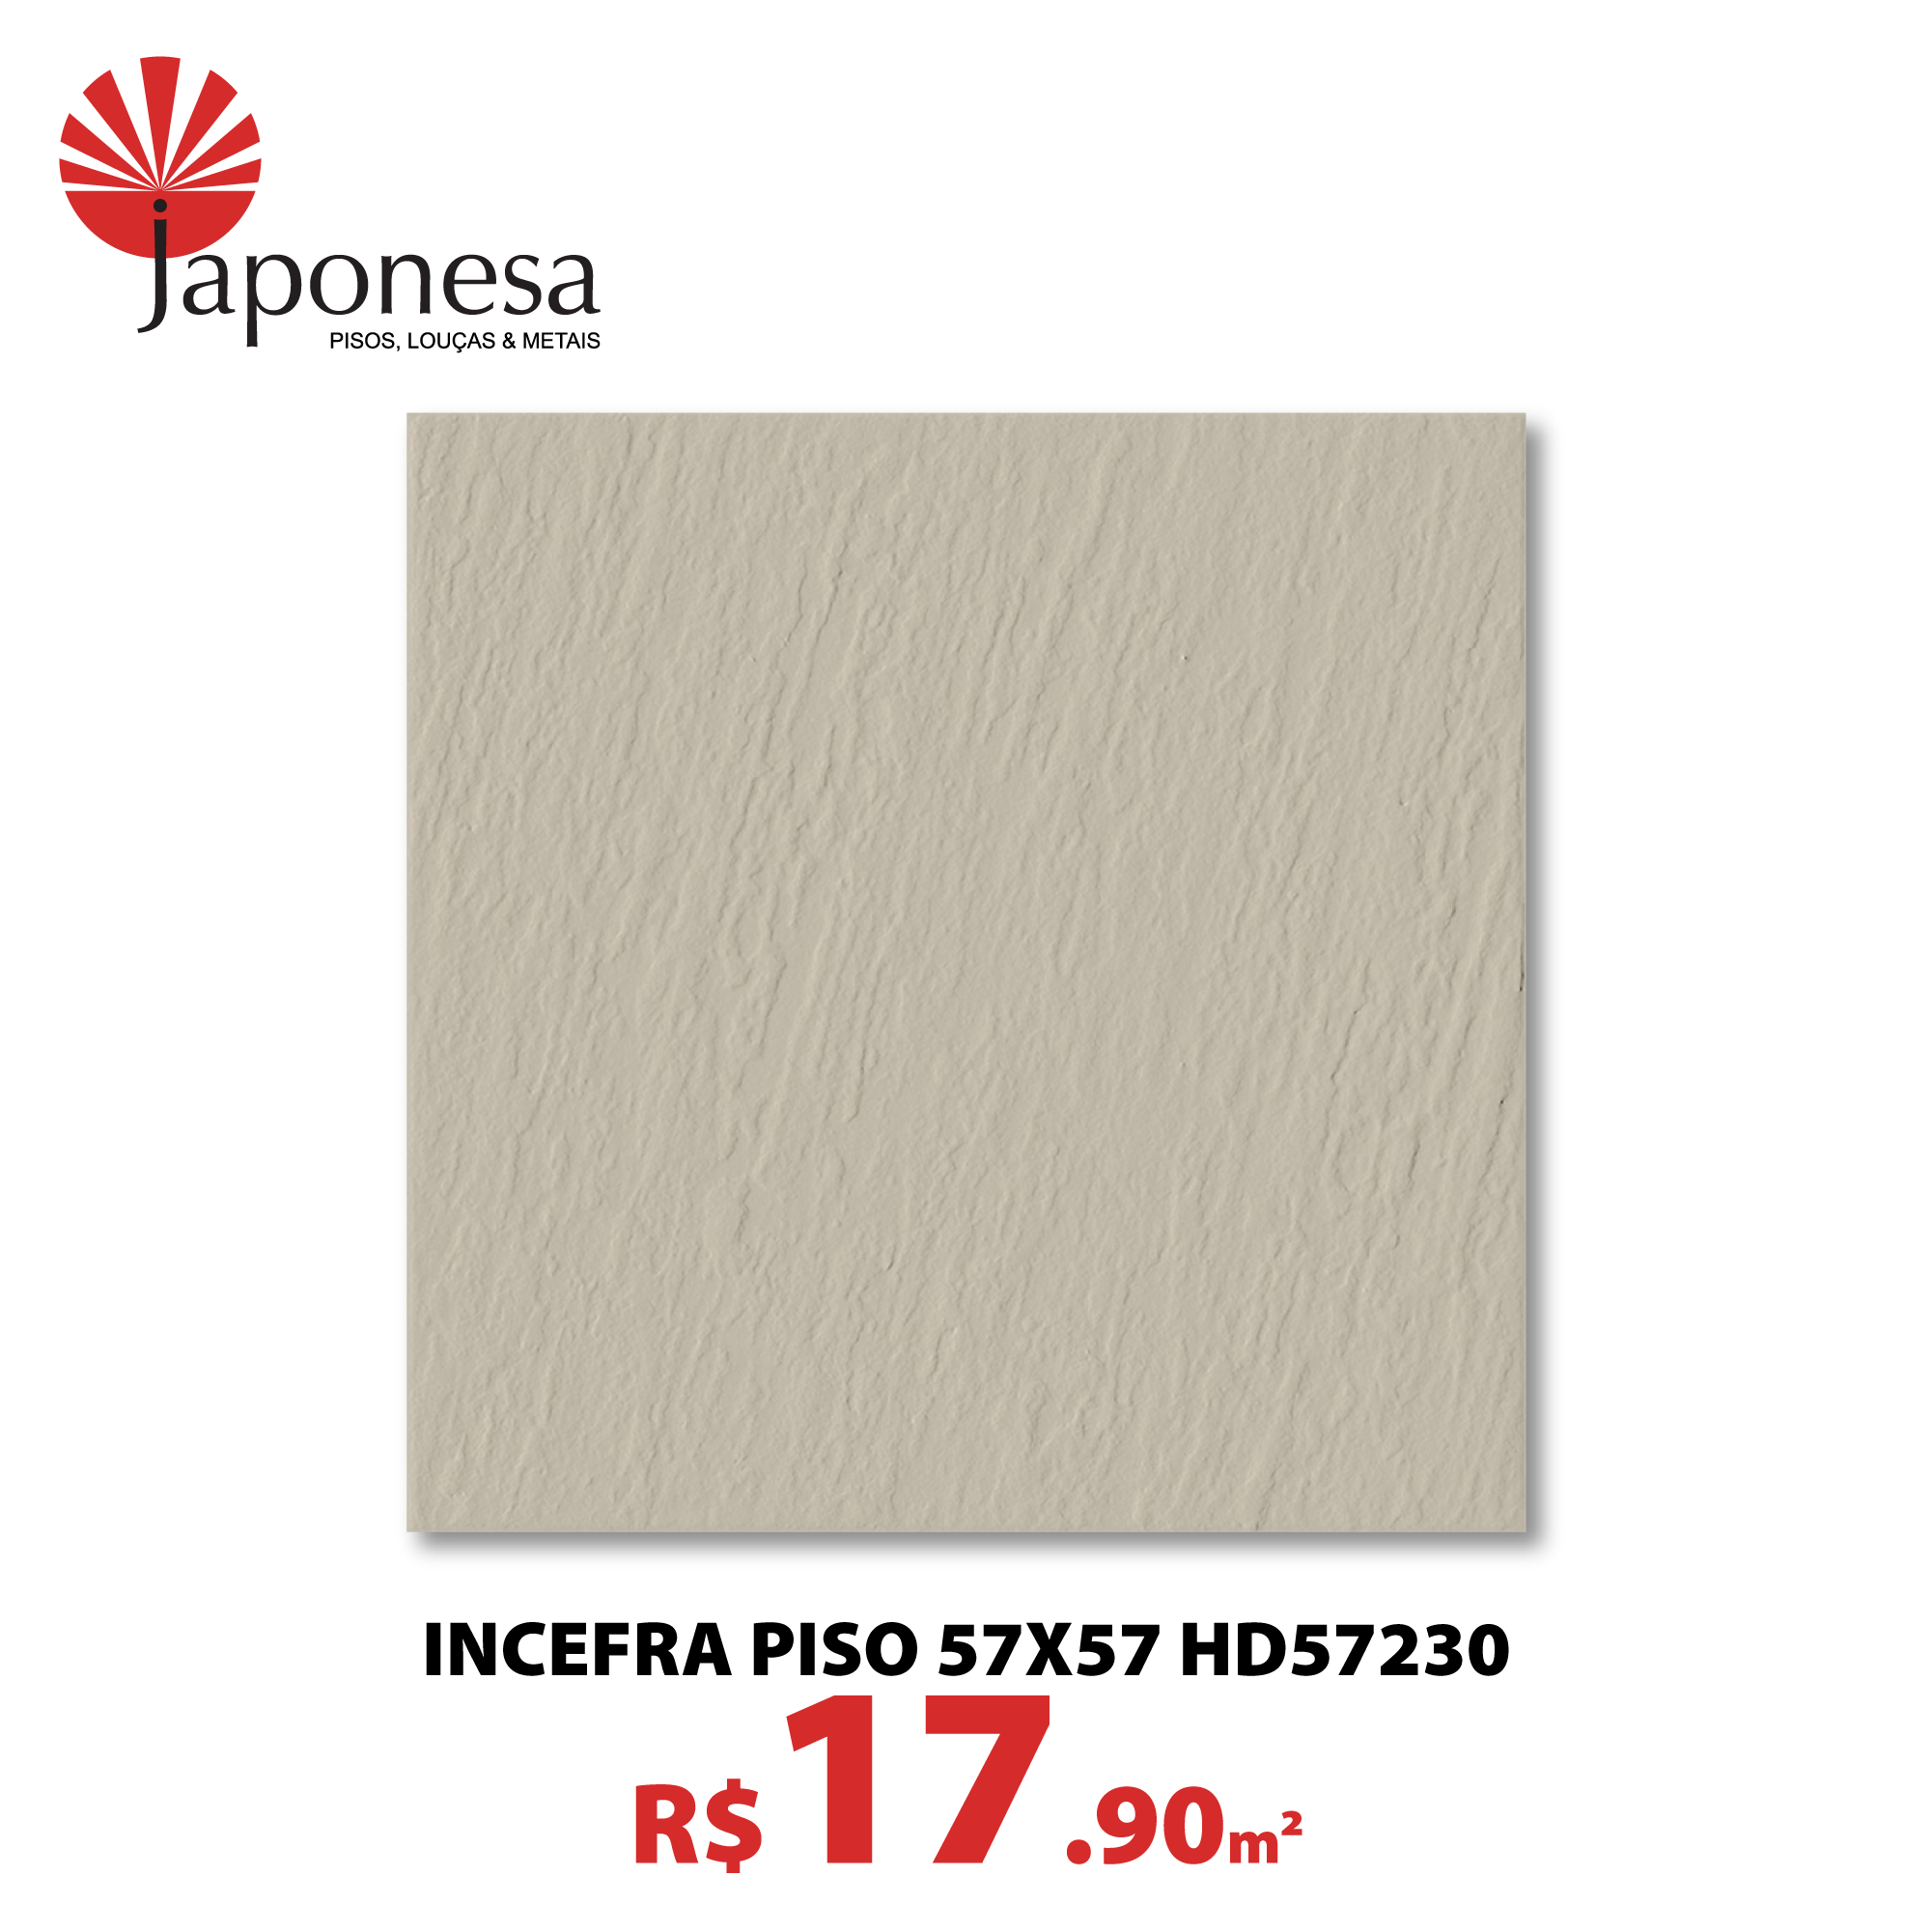 Incefra Piso 57×57 HD 57230